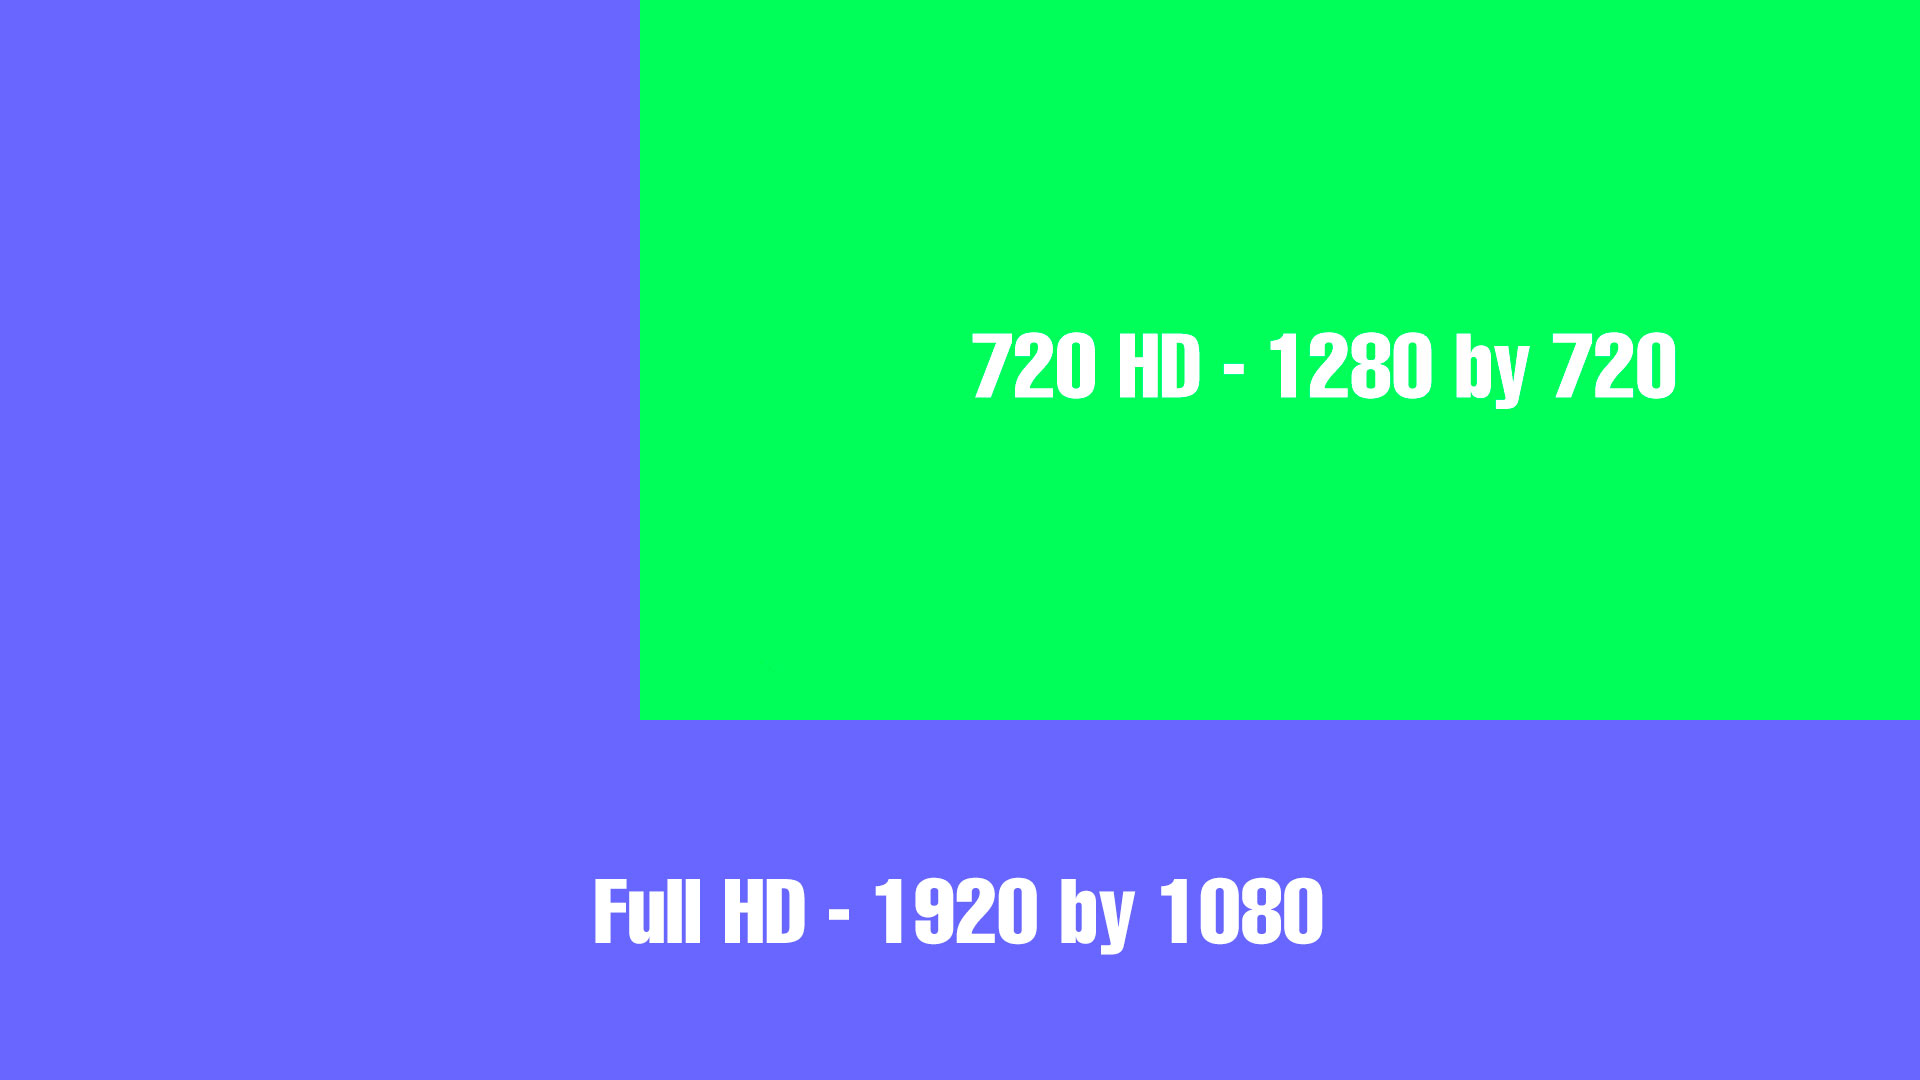 HD video resolution